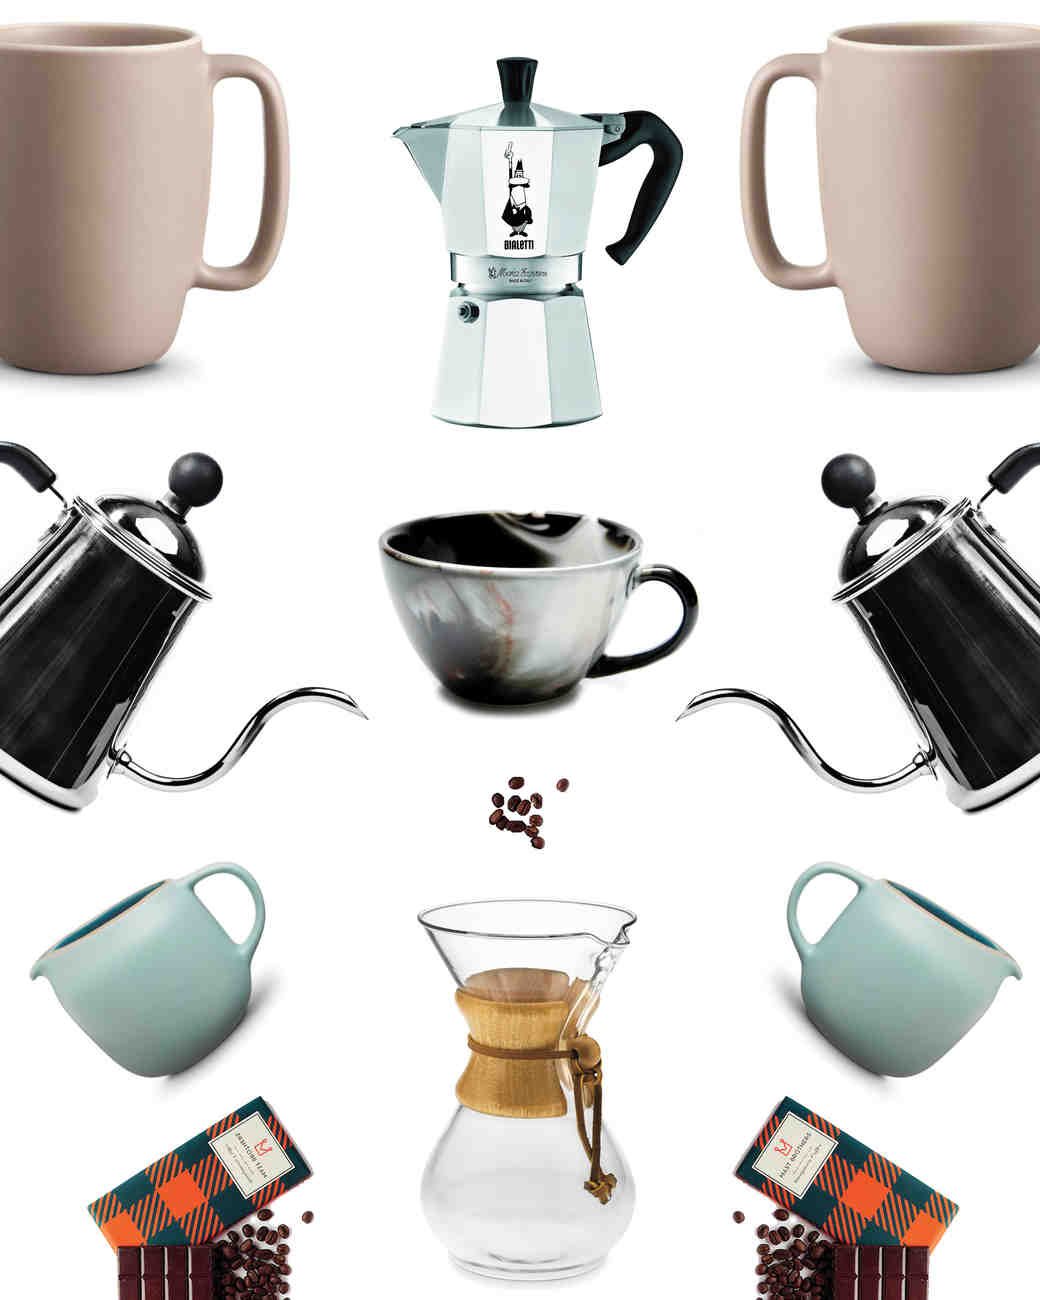 & 22 Wedding Gift Ideas for Coffee Lovers | Martha Stewart Weddings